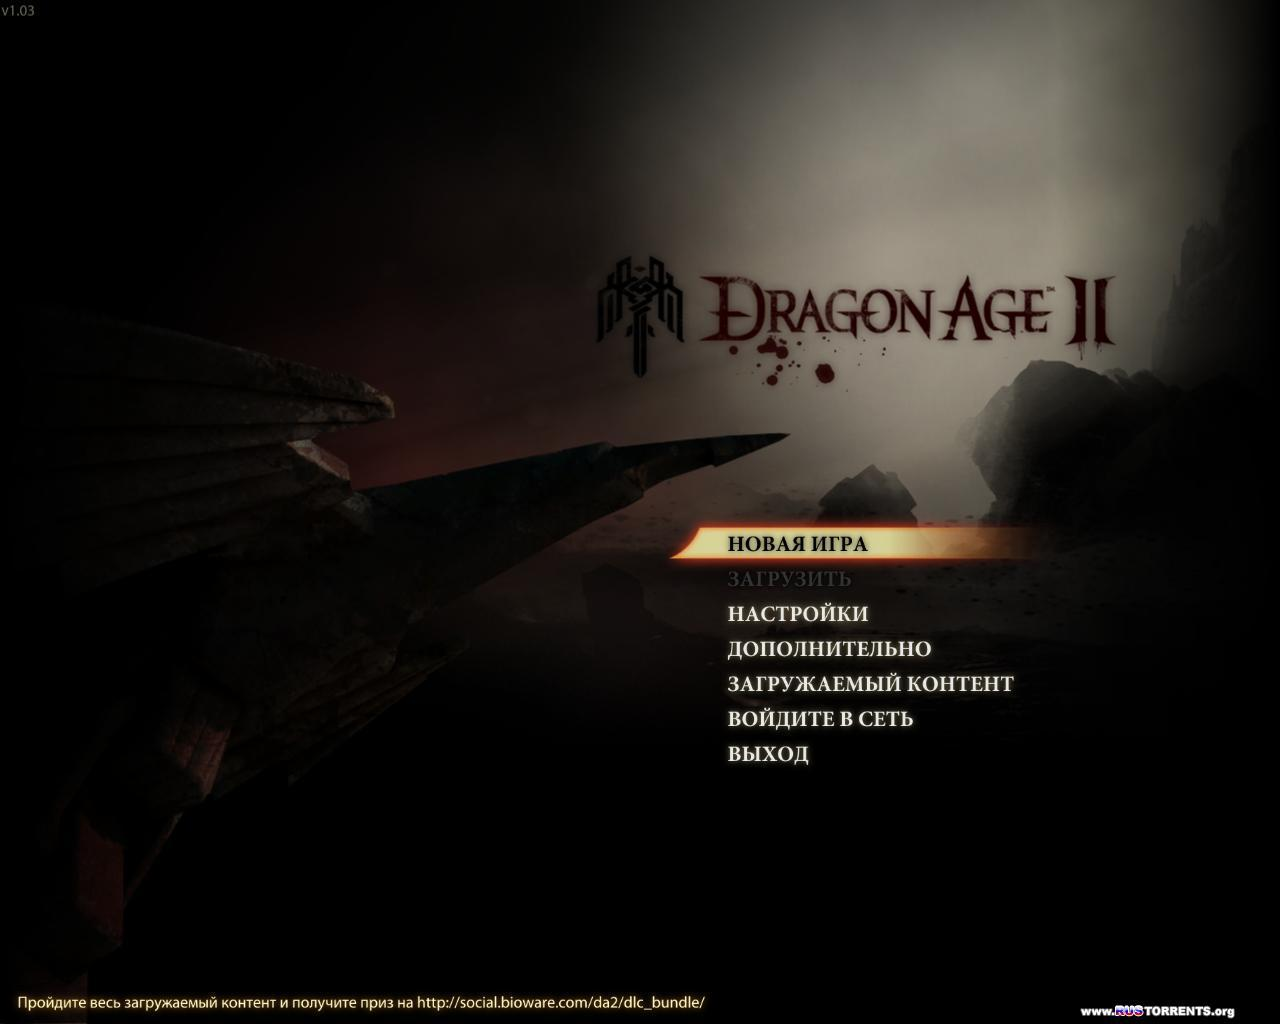 Dragon Age 2 v 1.03 + 14 DLC + 26 Items + High Res Texture Pack I Repack от Fenixx